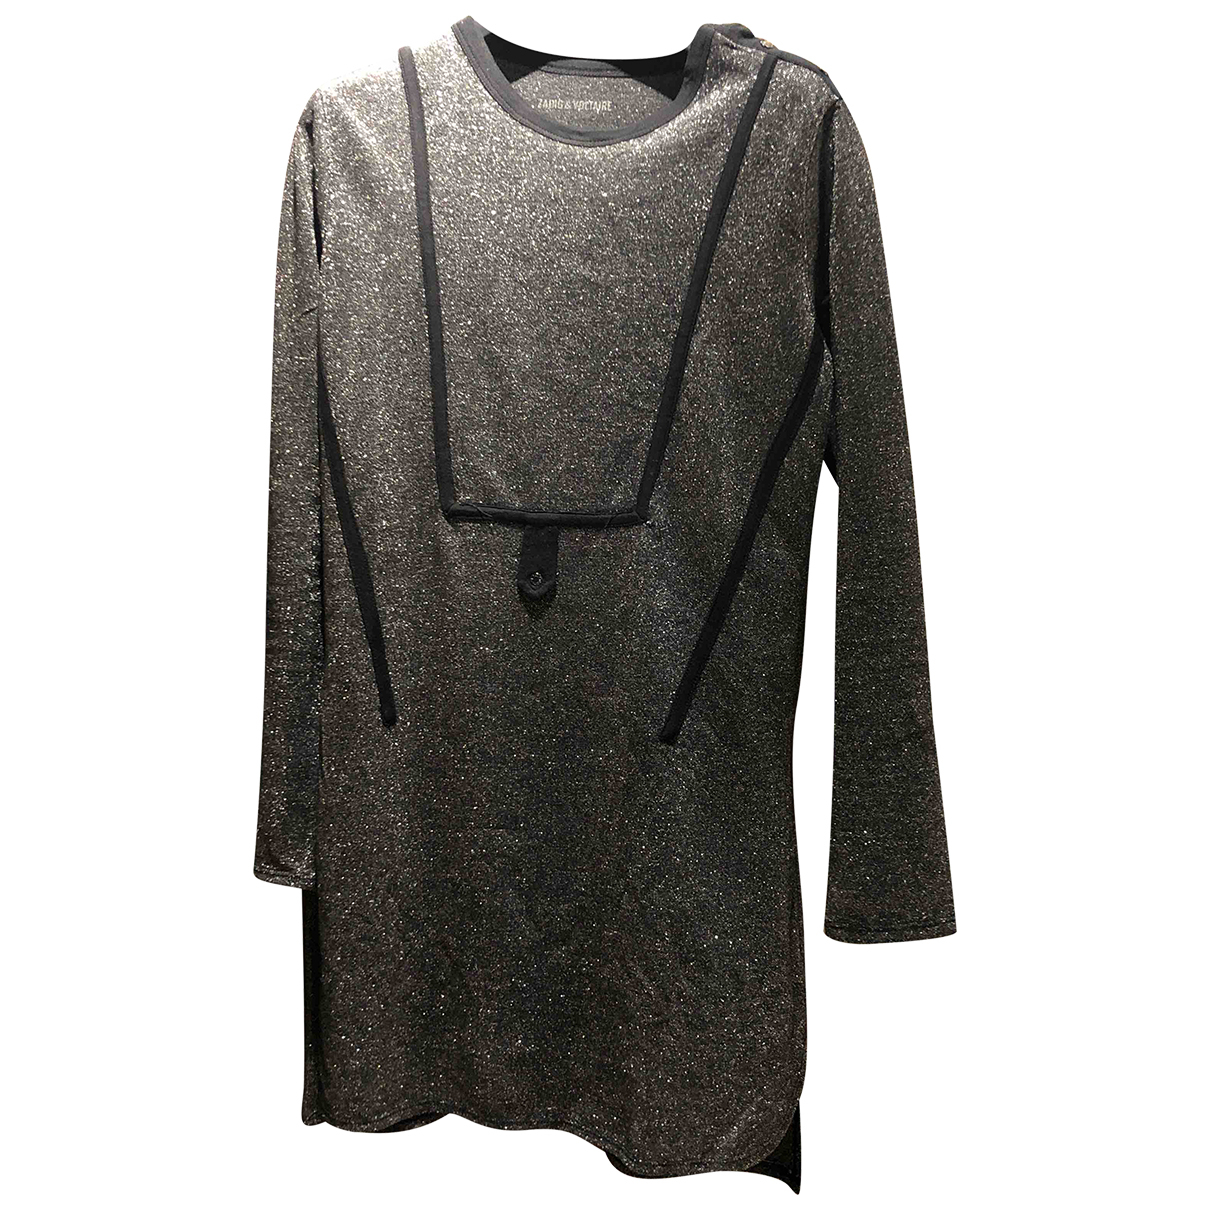 Zadig & Voltaire N Silver dress for Women 36 FR